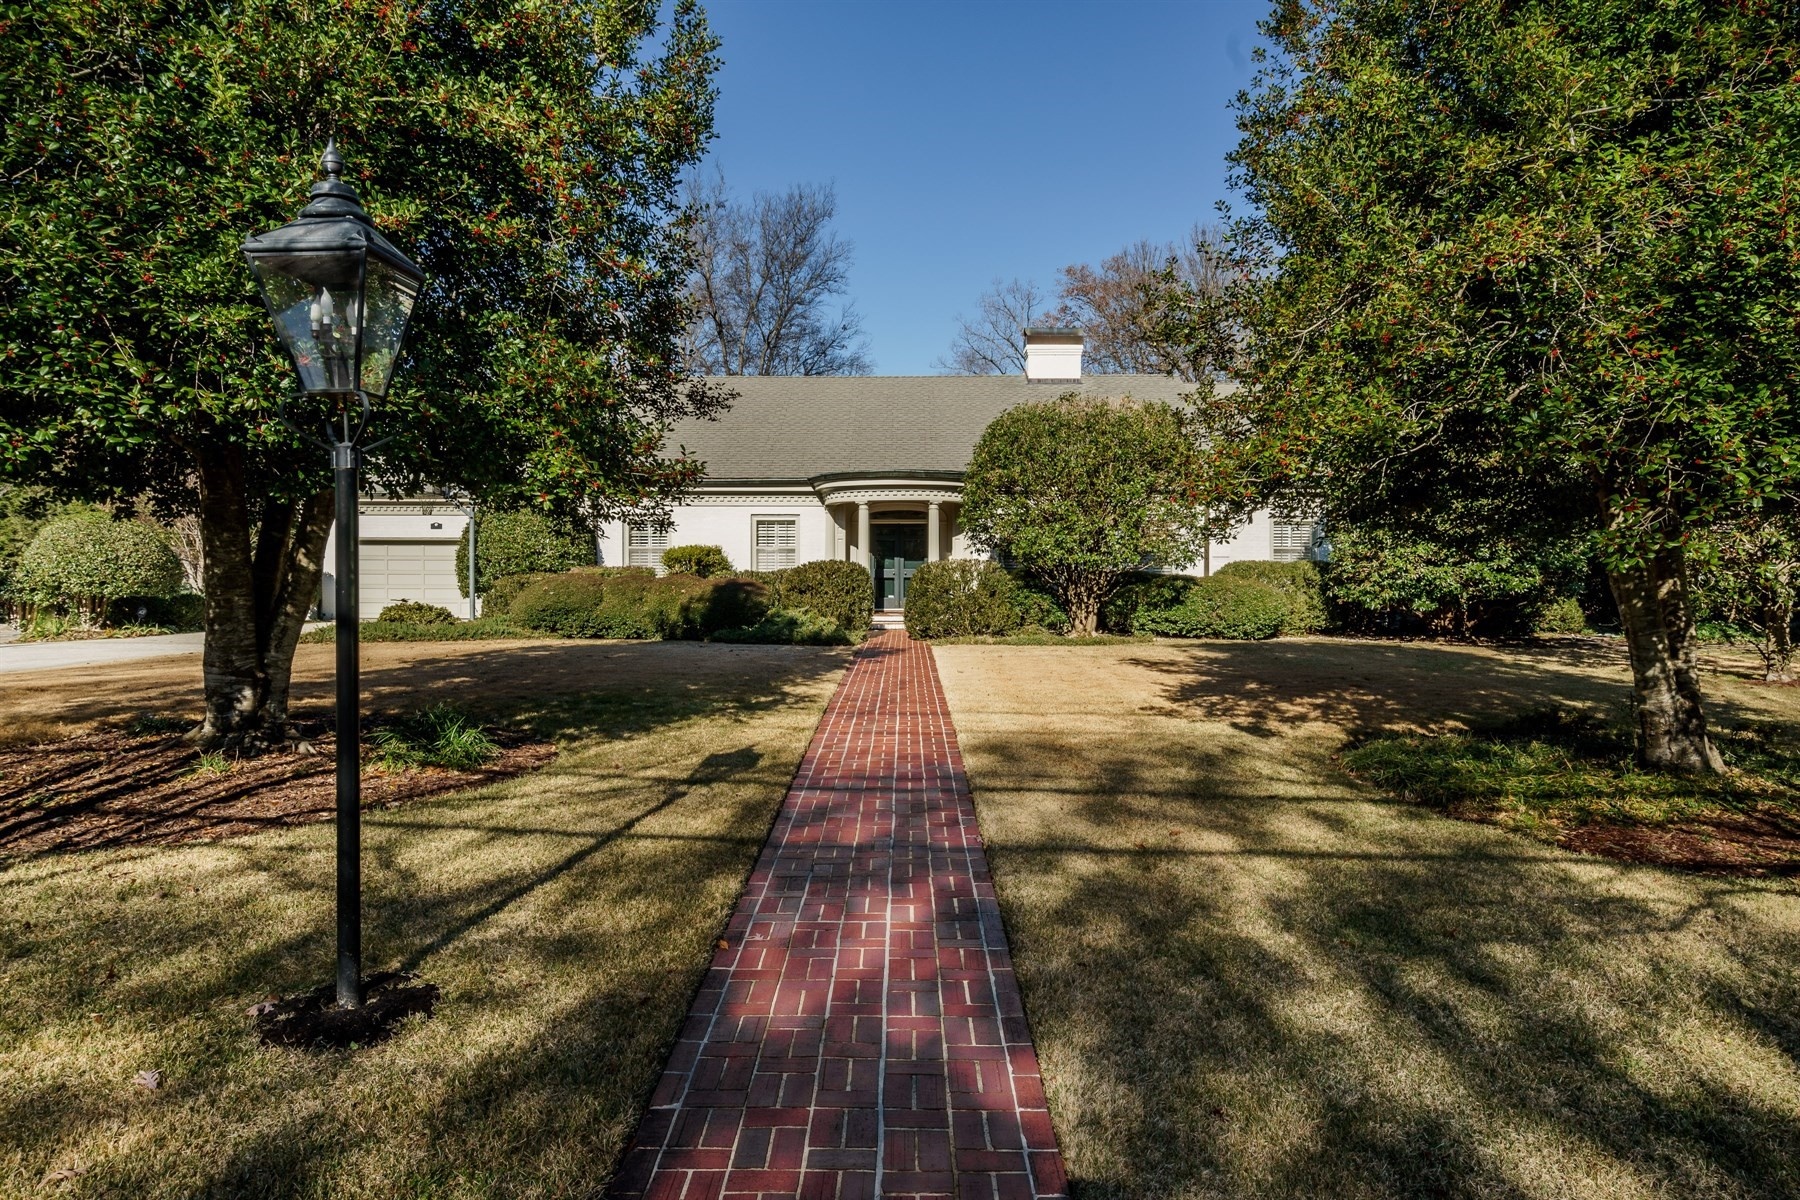 Single Family Home for Sale at Classic One Level Ranch Inside the Beltline 2415 Anderson Drive, Raleigh, North Carolina 27608 United StatesIn/Around: Cary, Chapel Hill, Durham